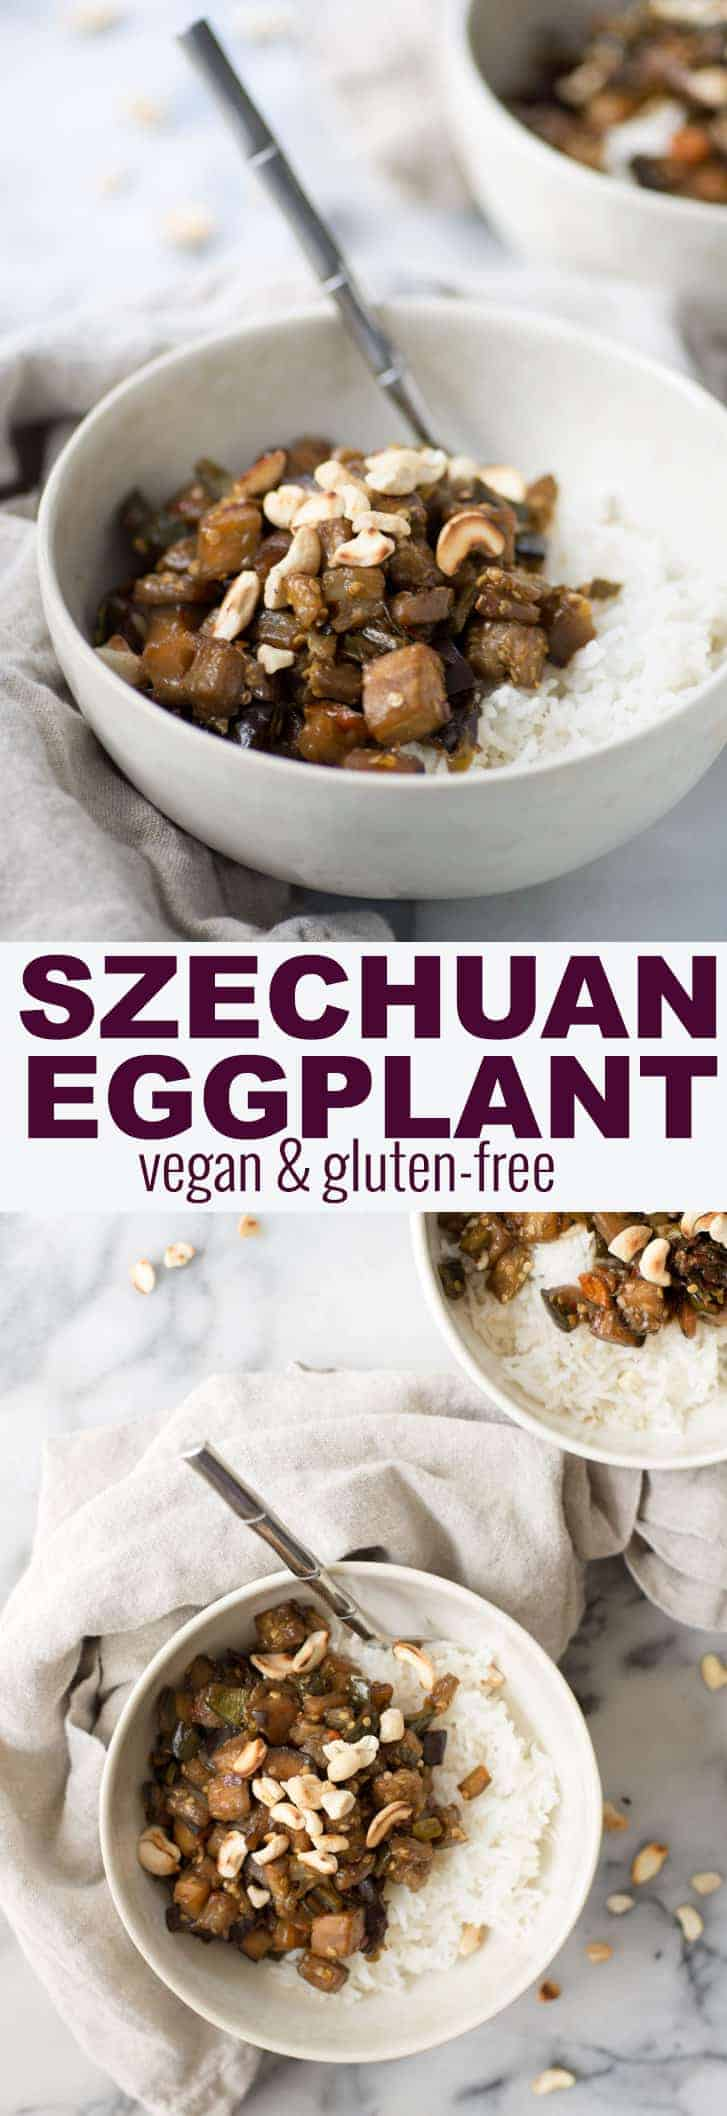 Szechuan Eggplant! This spicy eggplant is so delicious, a must-make! If you like spicy food then you must try this one. Vegan and Gluten-Free. | www.delishknowledge.com